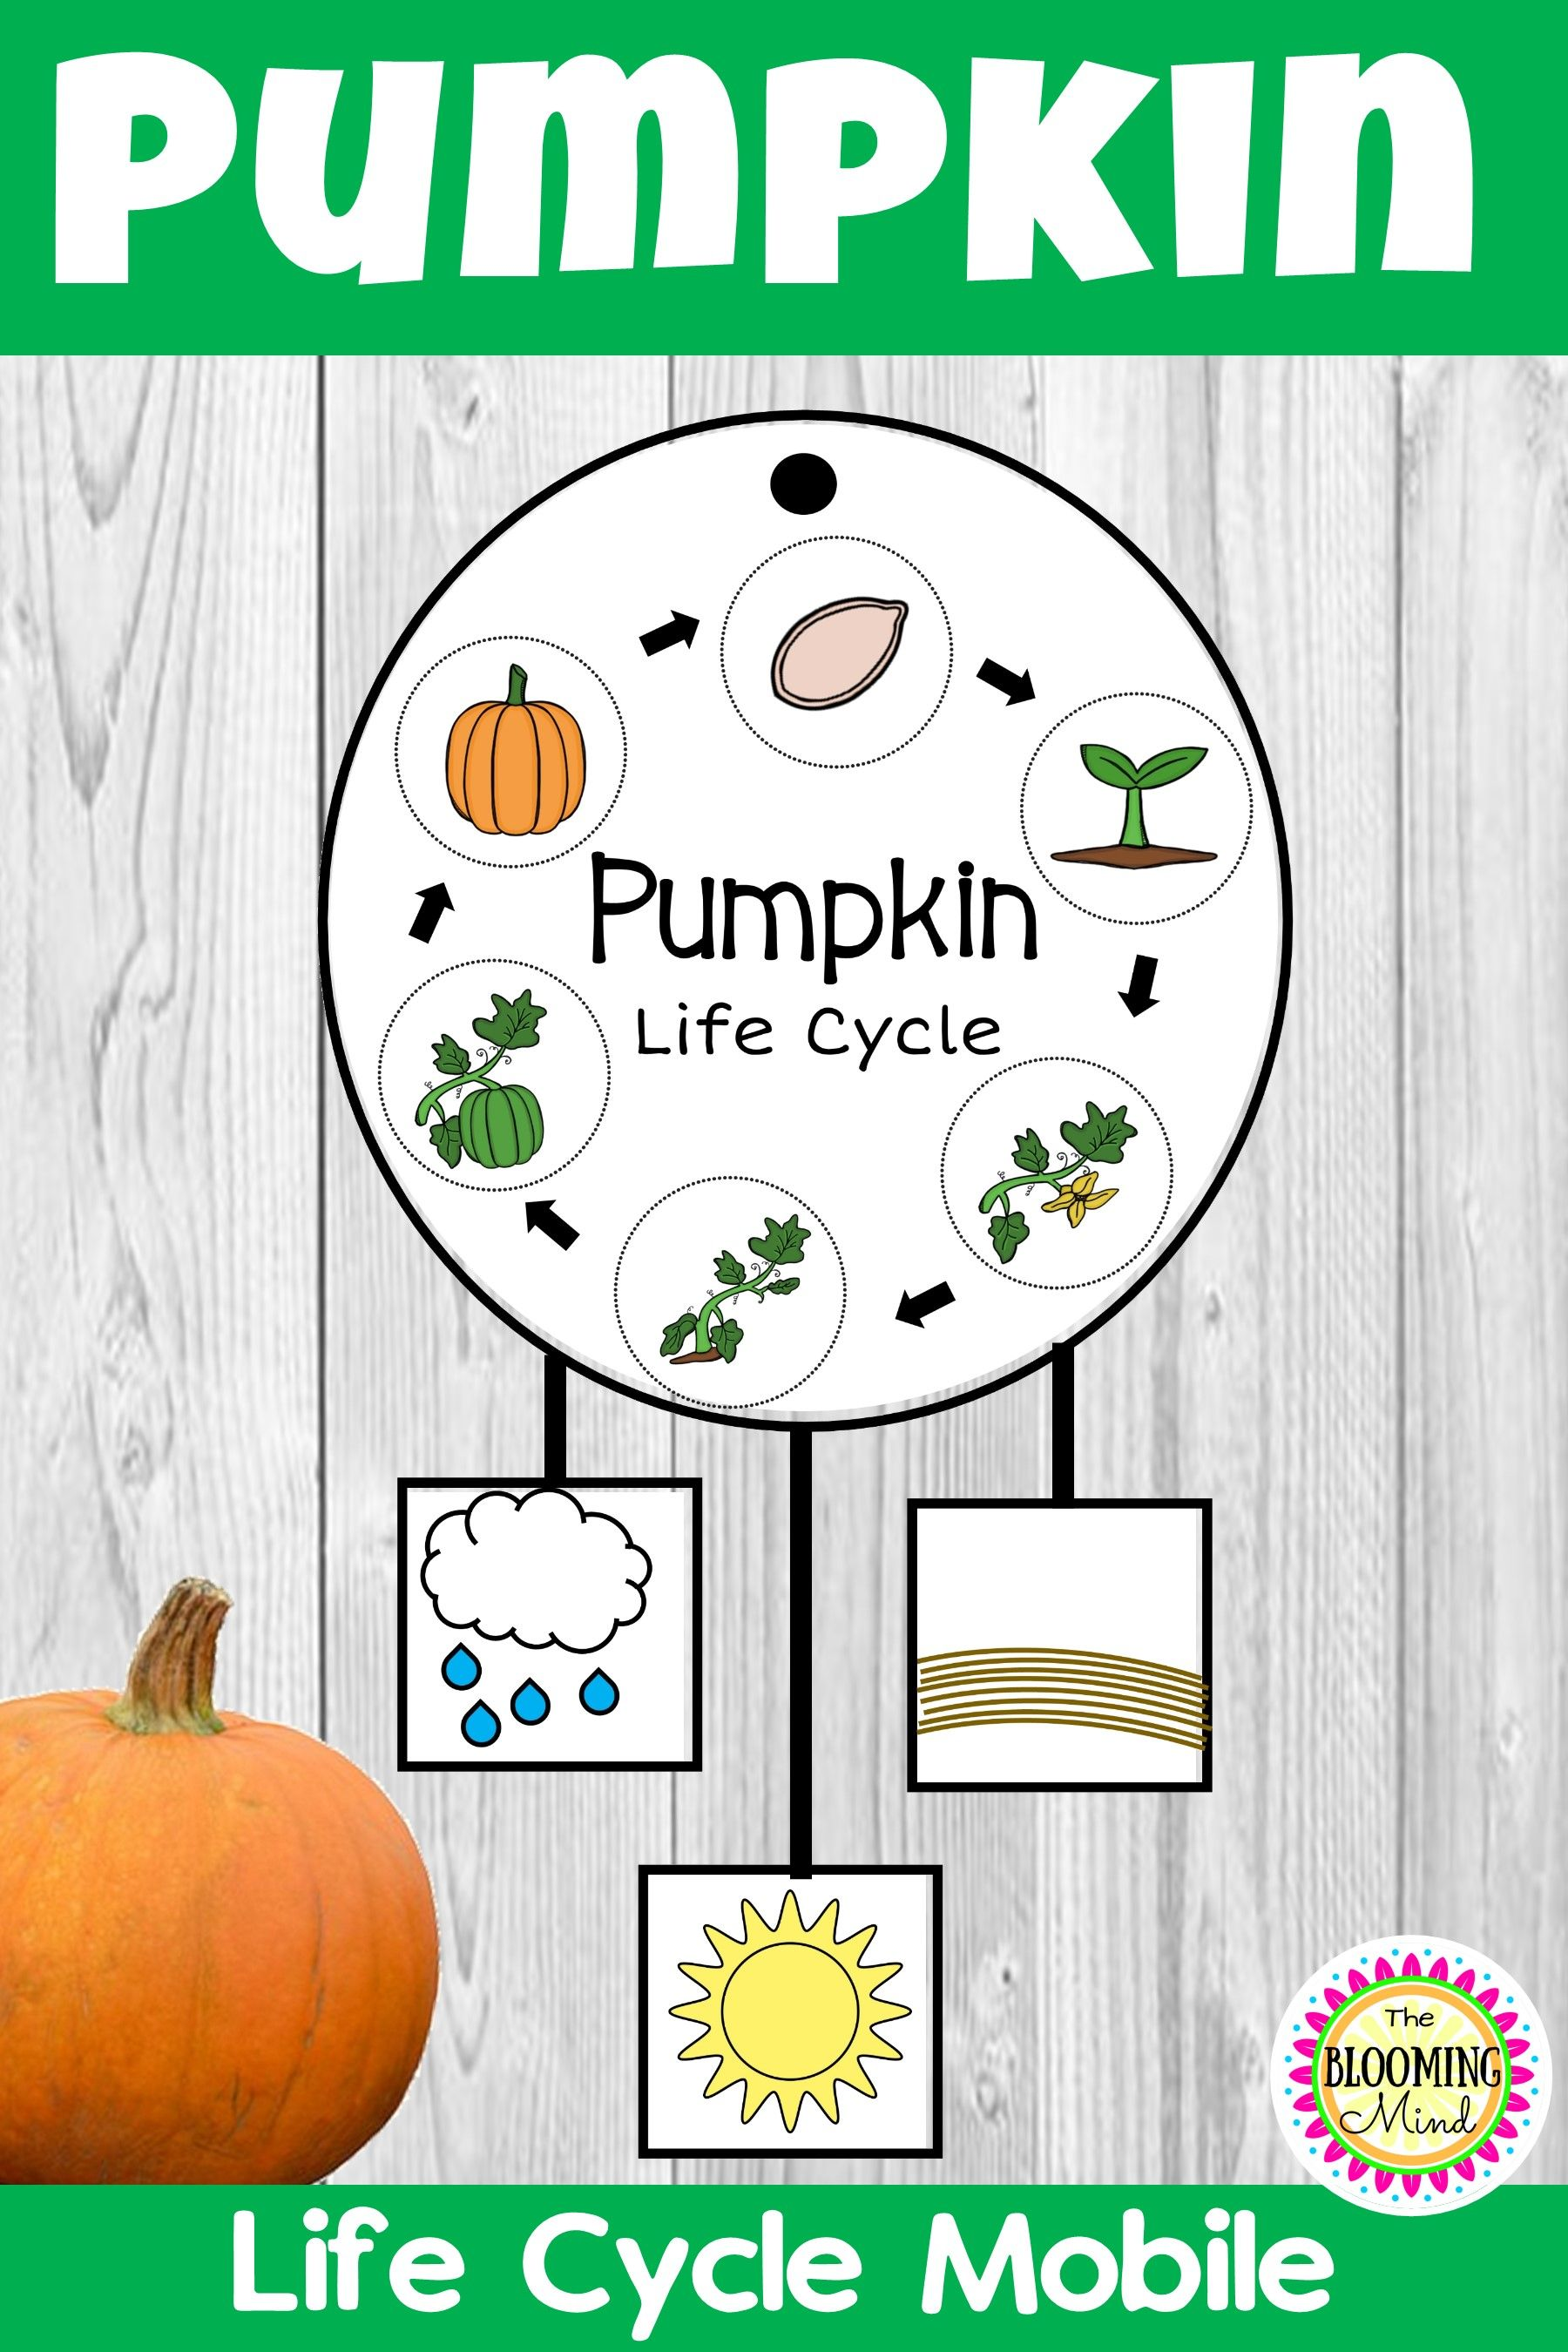 Pumpkin Life Cycle Activity (With images) Pumpkin life